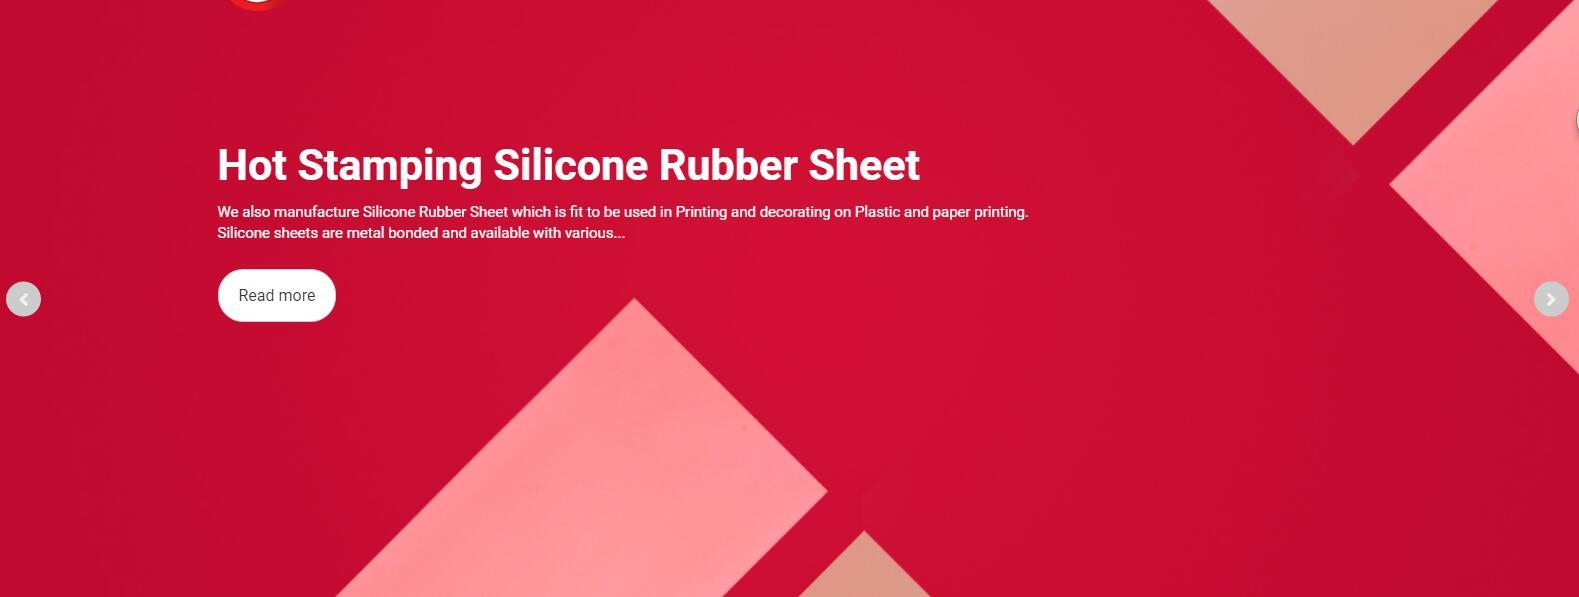 Hot Stamping Silicone Rubber Sheet 6